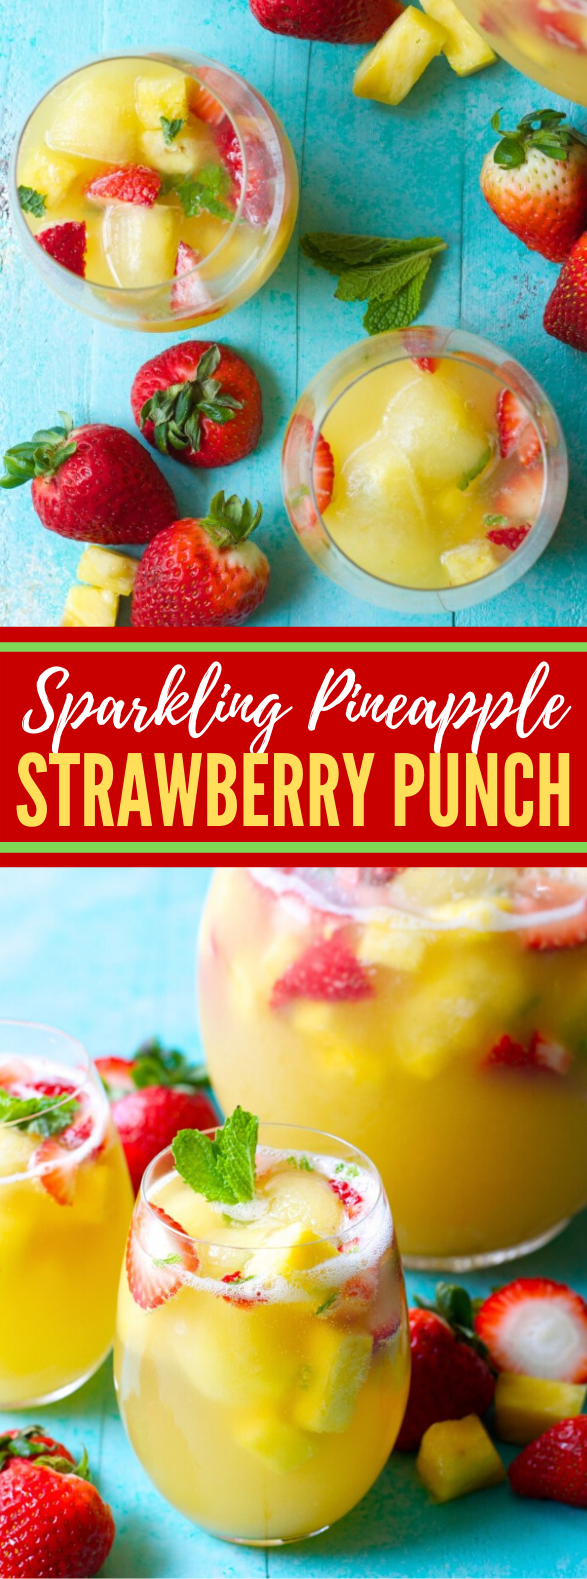 Sparkling Pineapple Strawberry Punch #drinks #freshfruit